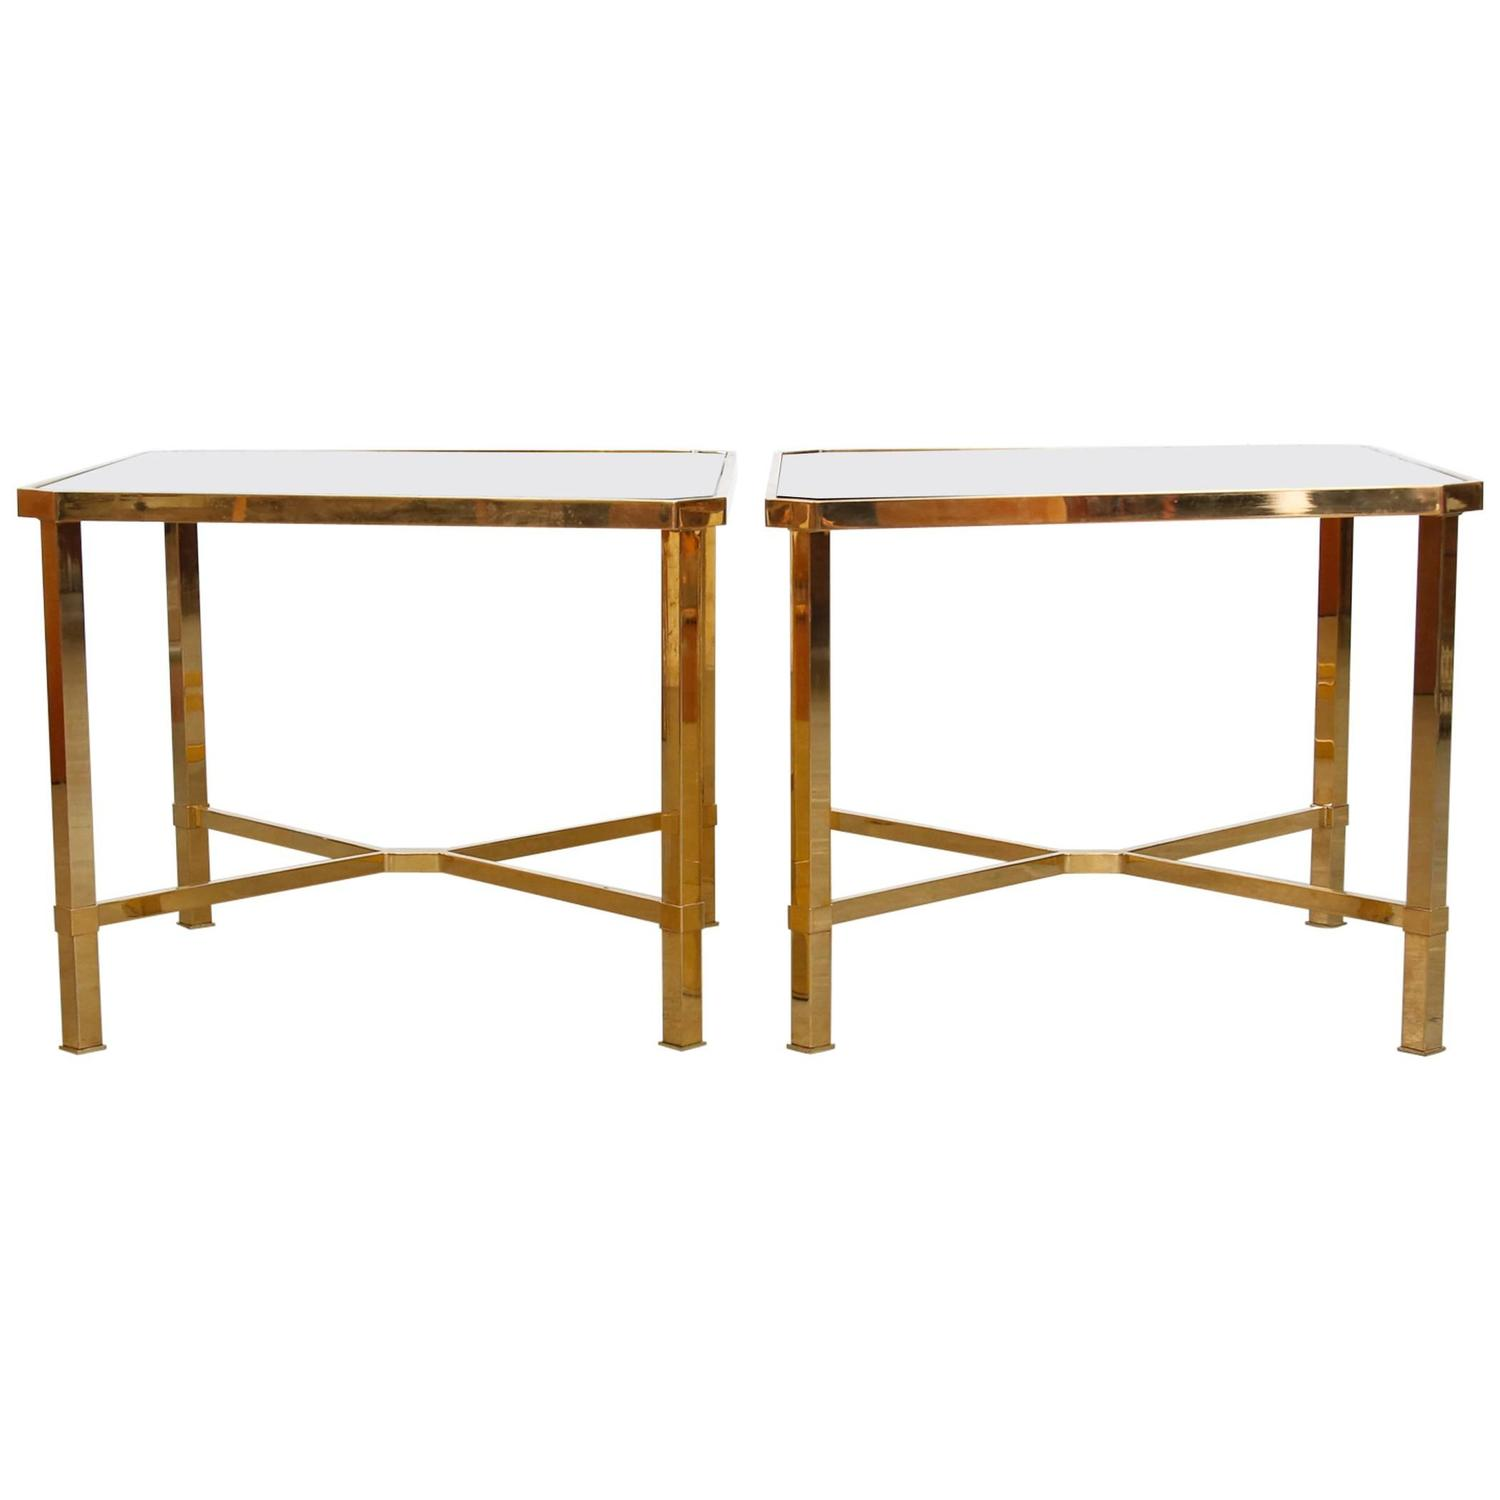 Pair Of Maison Jansen Style Gold-Plated Coffee Tables For